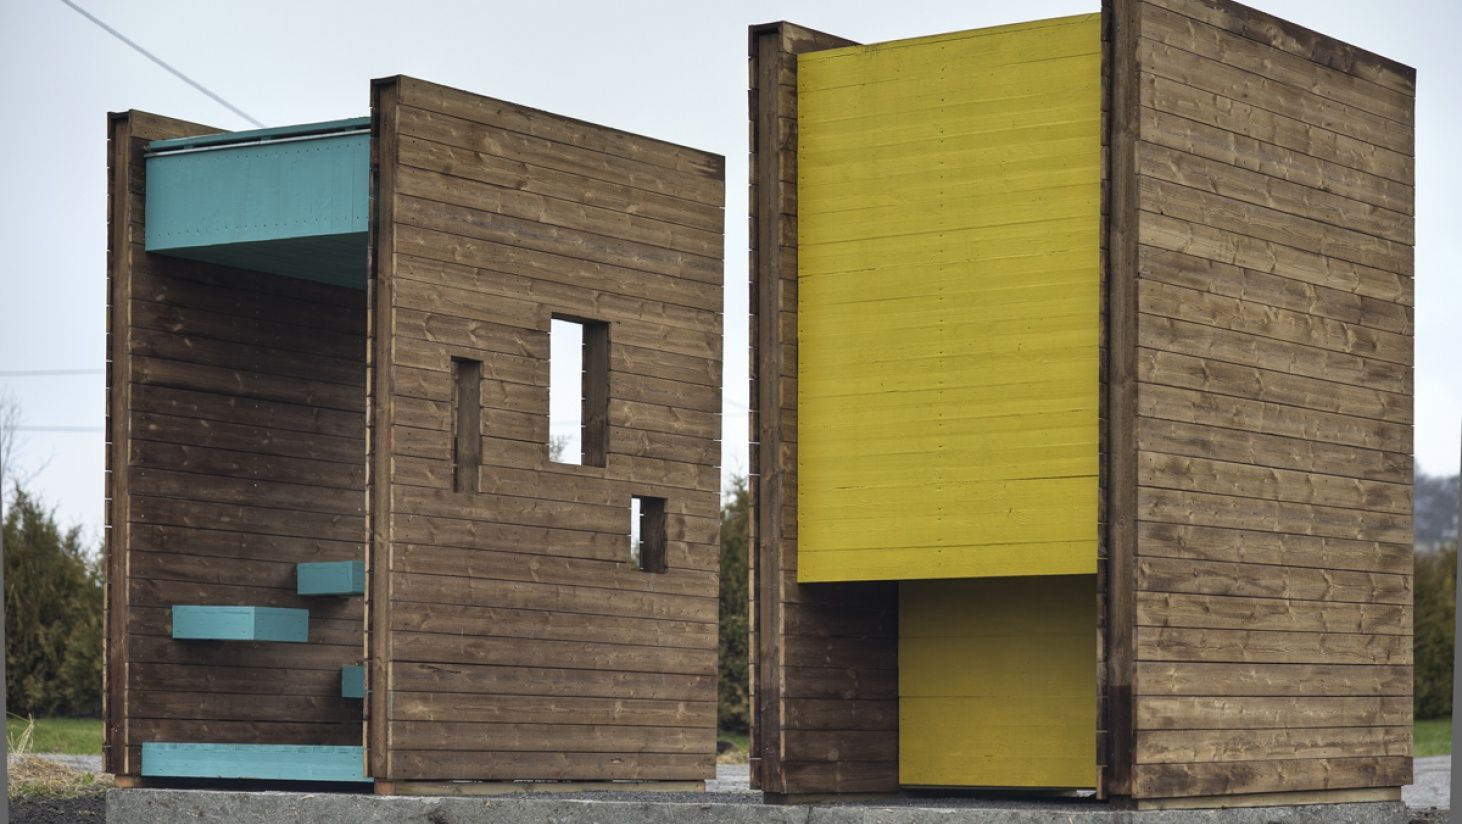 Kebonized Wood Cladding For Exterior Structures | Exterior Wood ...